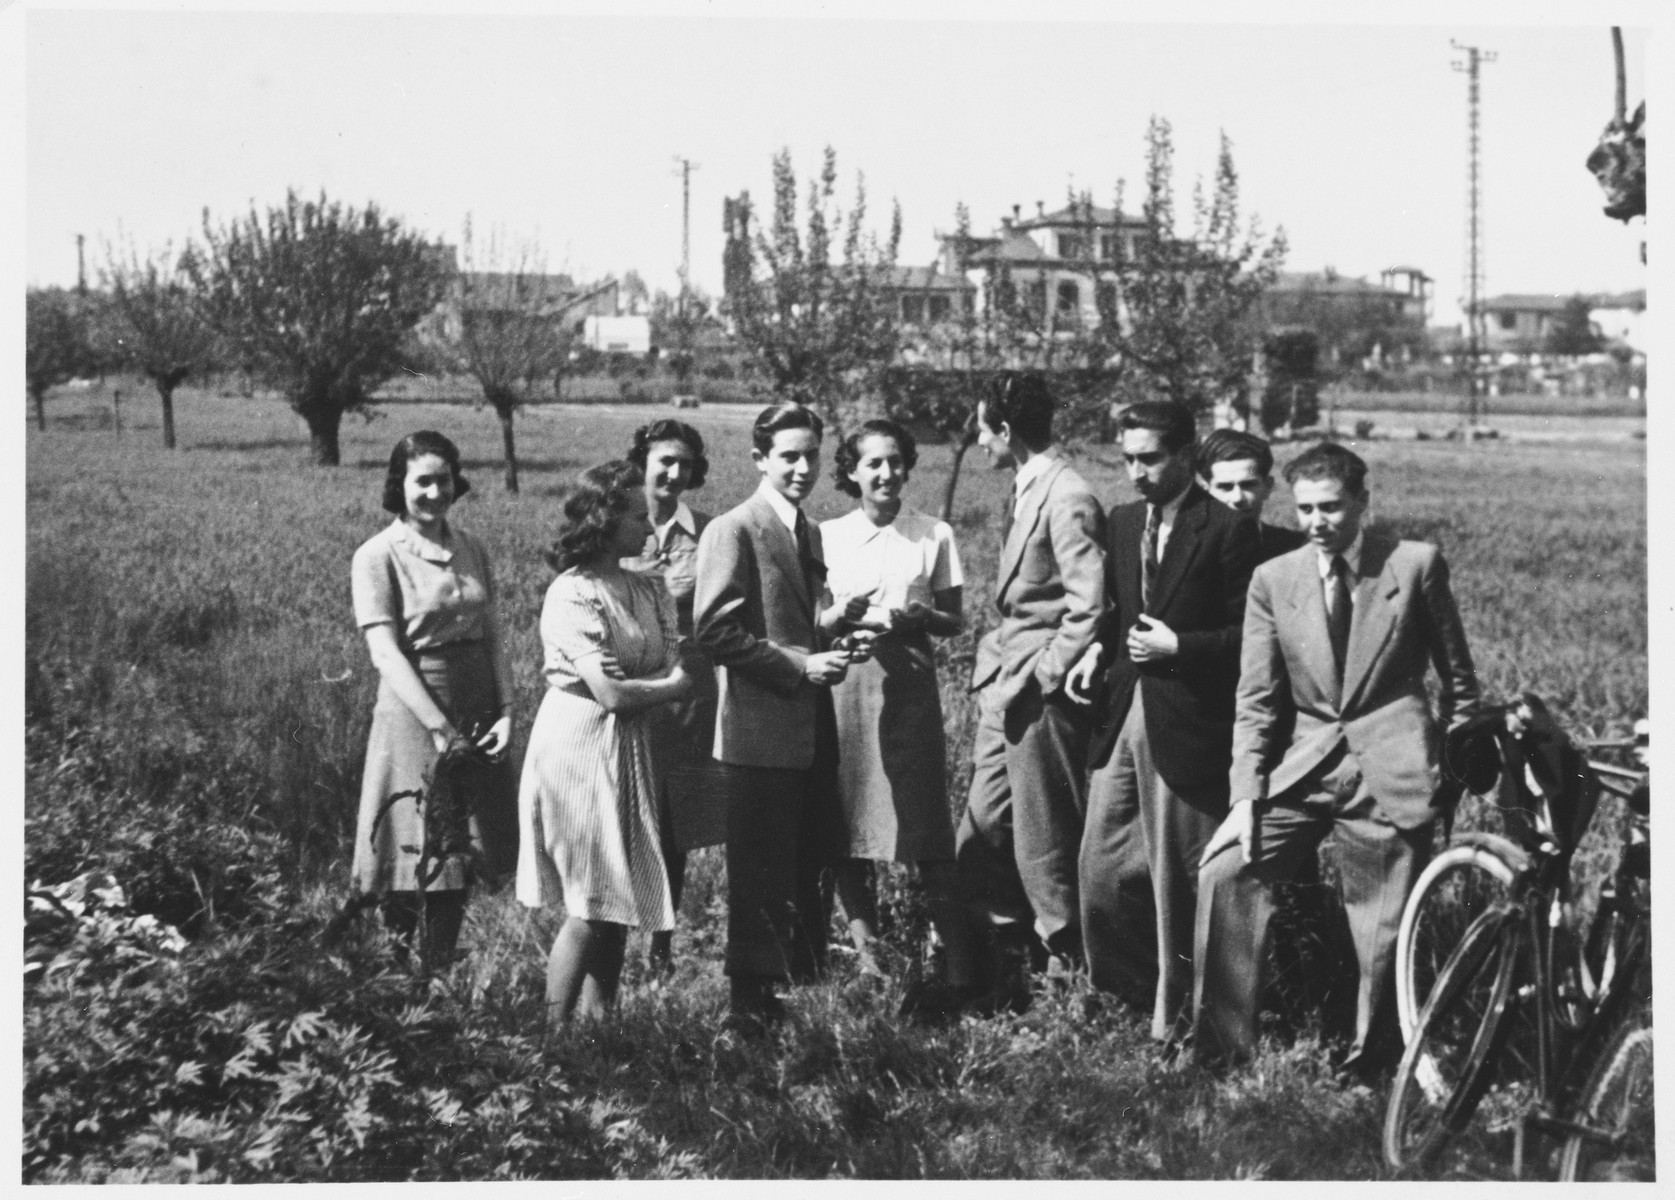 Students from the Jewish high school in Milan go for a bicycle ride in the countryside.